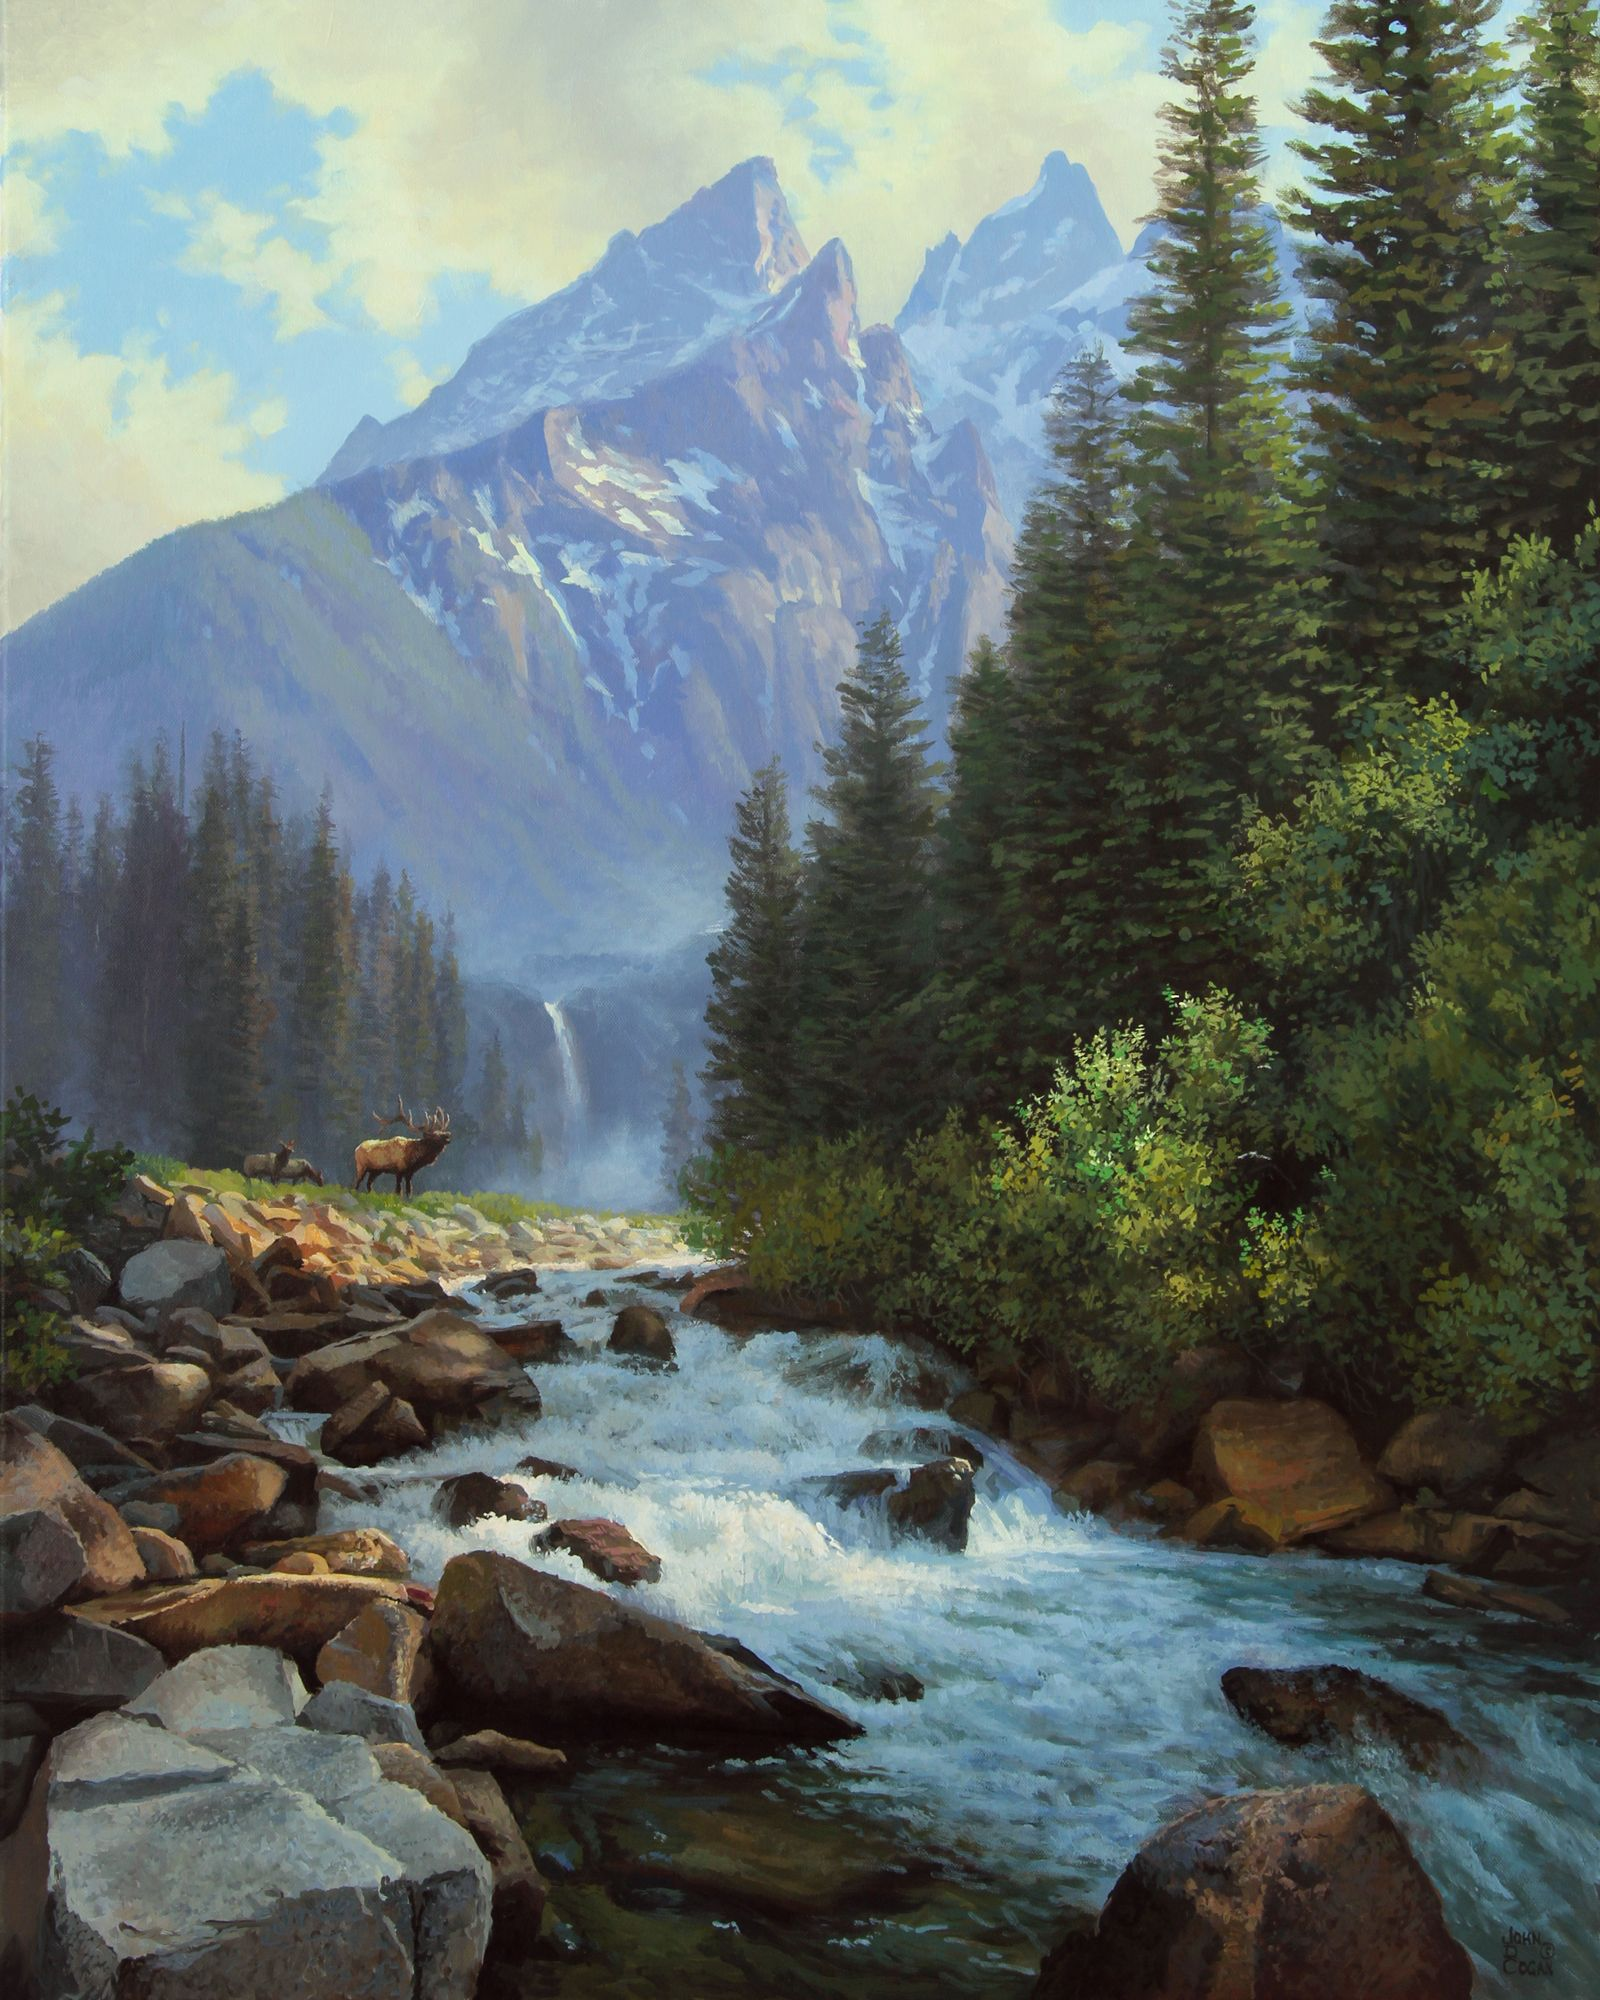 John Cogan Landscape And Wildlife Artist Selling His Art On His Website Example Of Checkout Oil Painting Landscape Nature Paintings Landscape Paintings